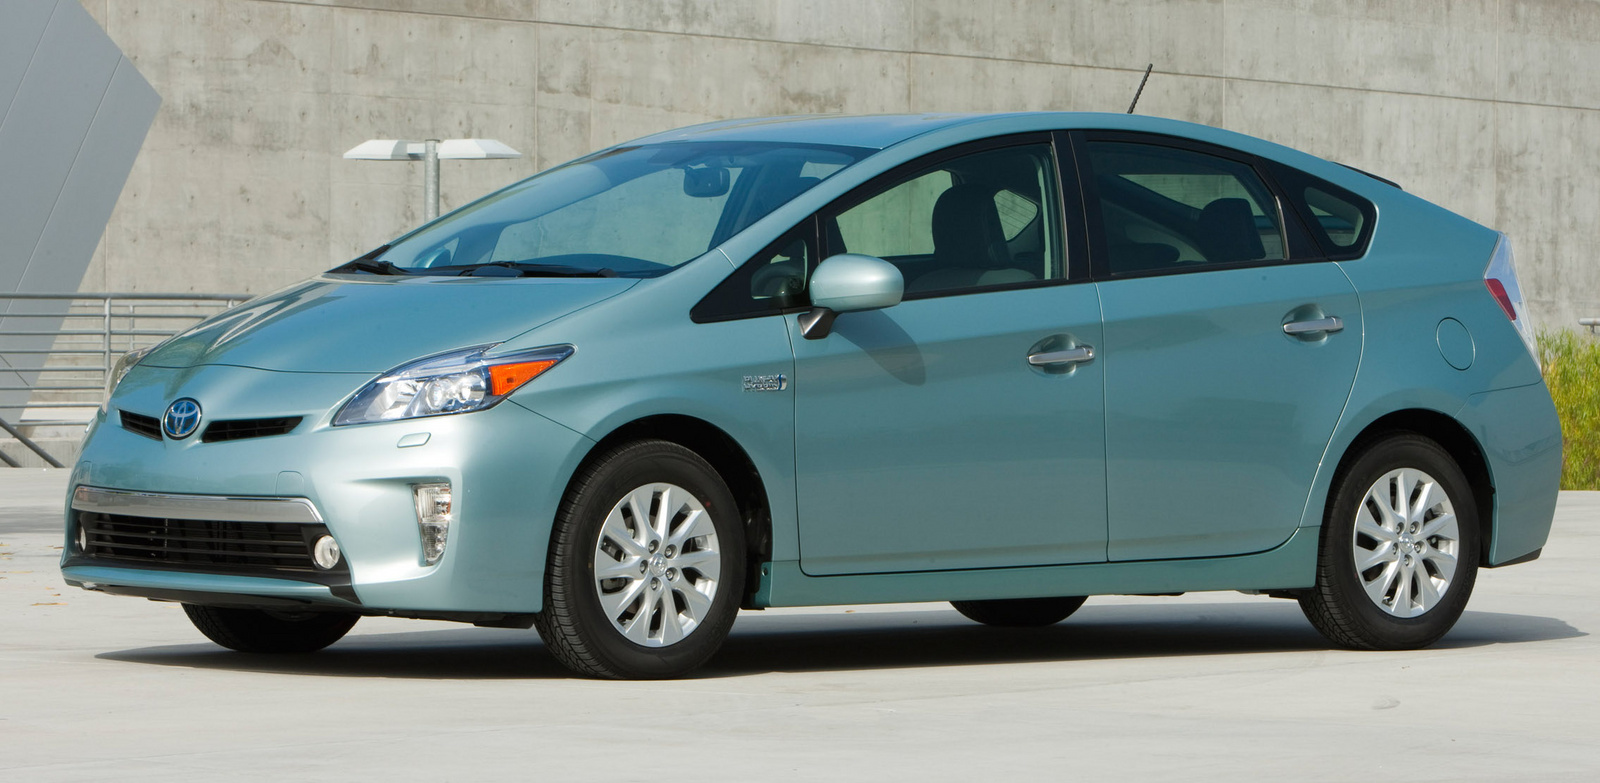 Home / Research / Toyota / Prius Plug-in / 2015